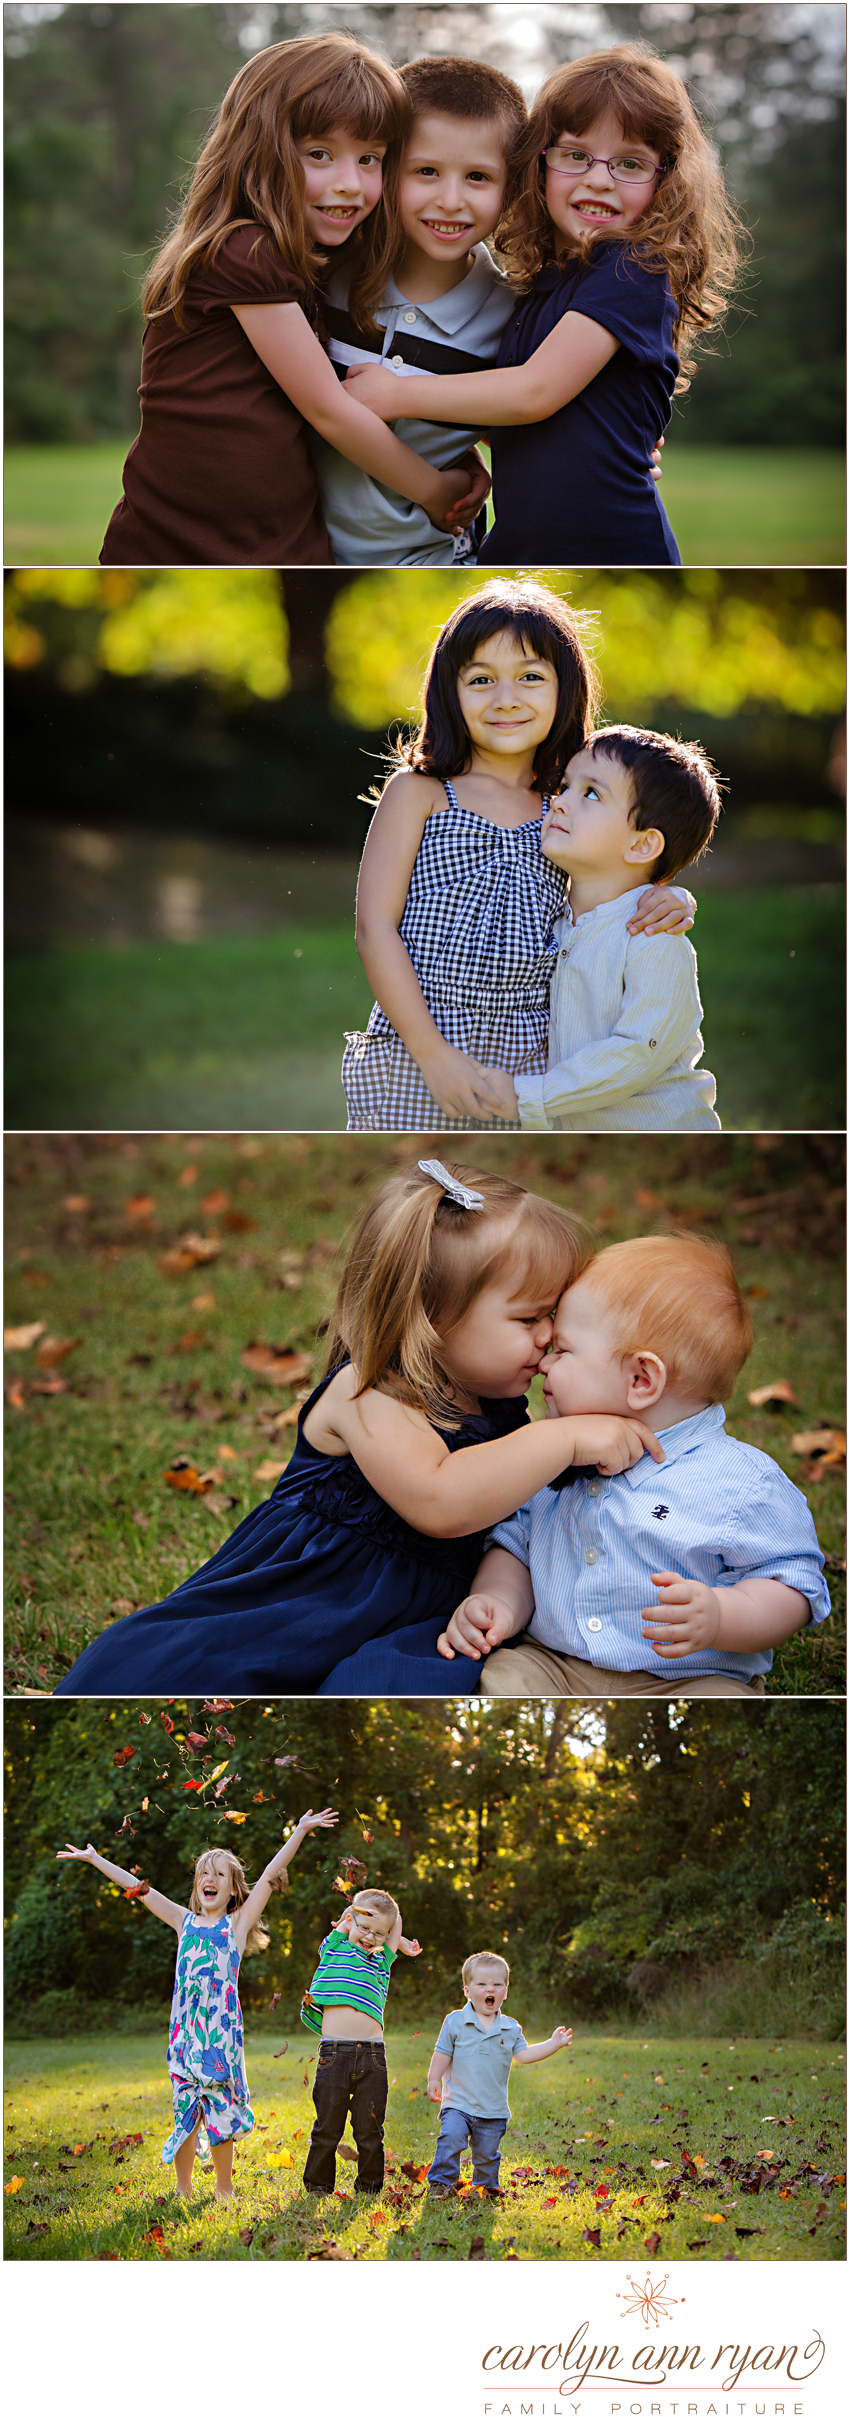 Charlotte, NC Sibling Photographer shares adorable portraits of brothers and sisters